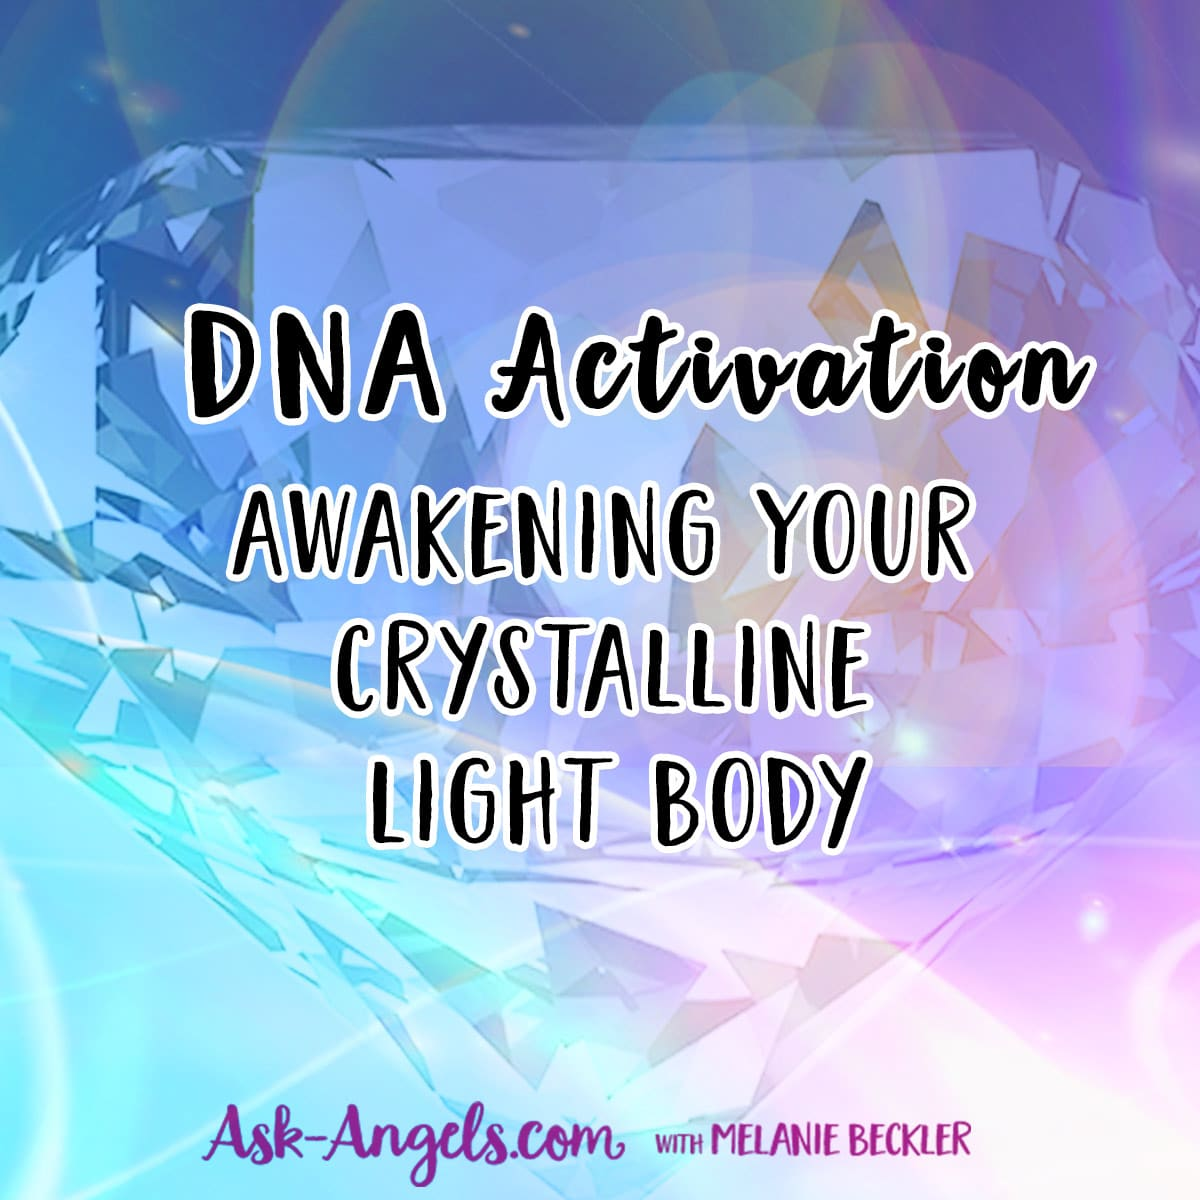 DNA Activation Course